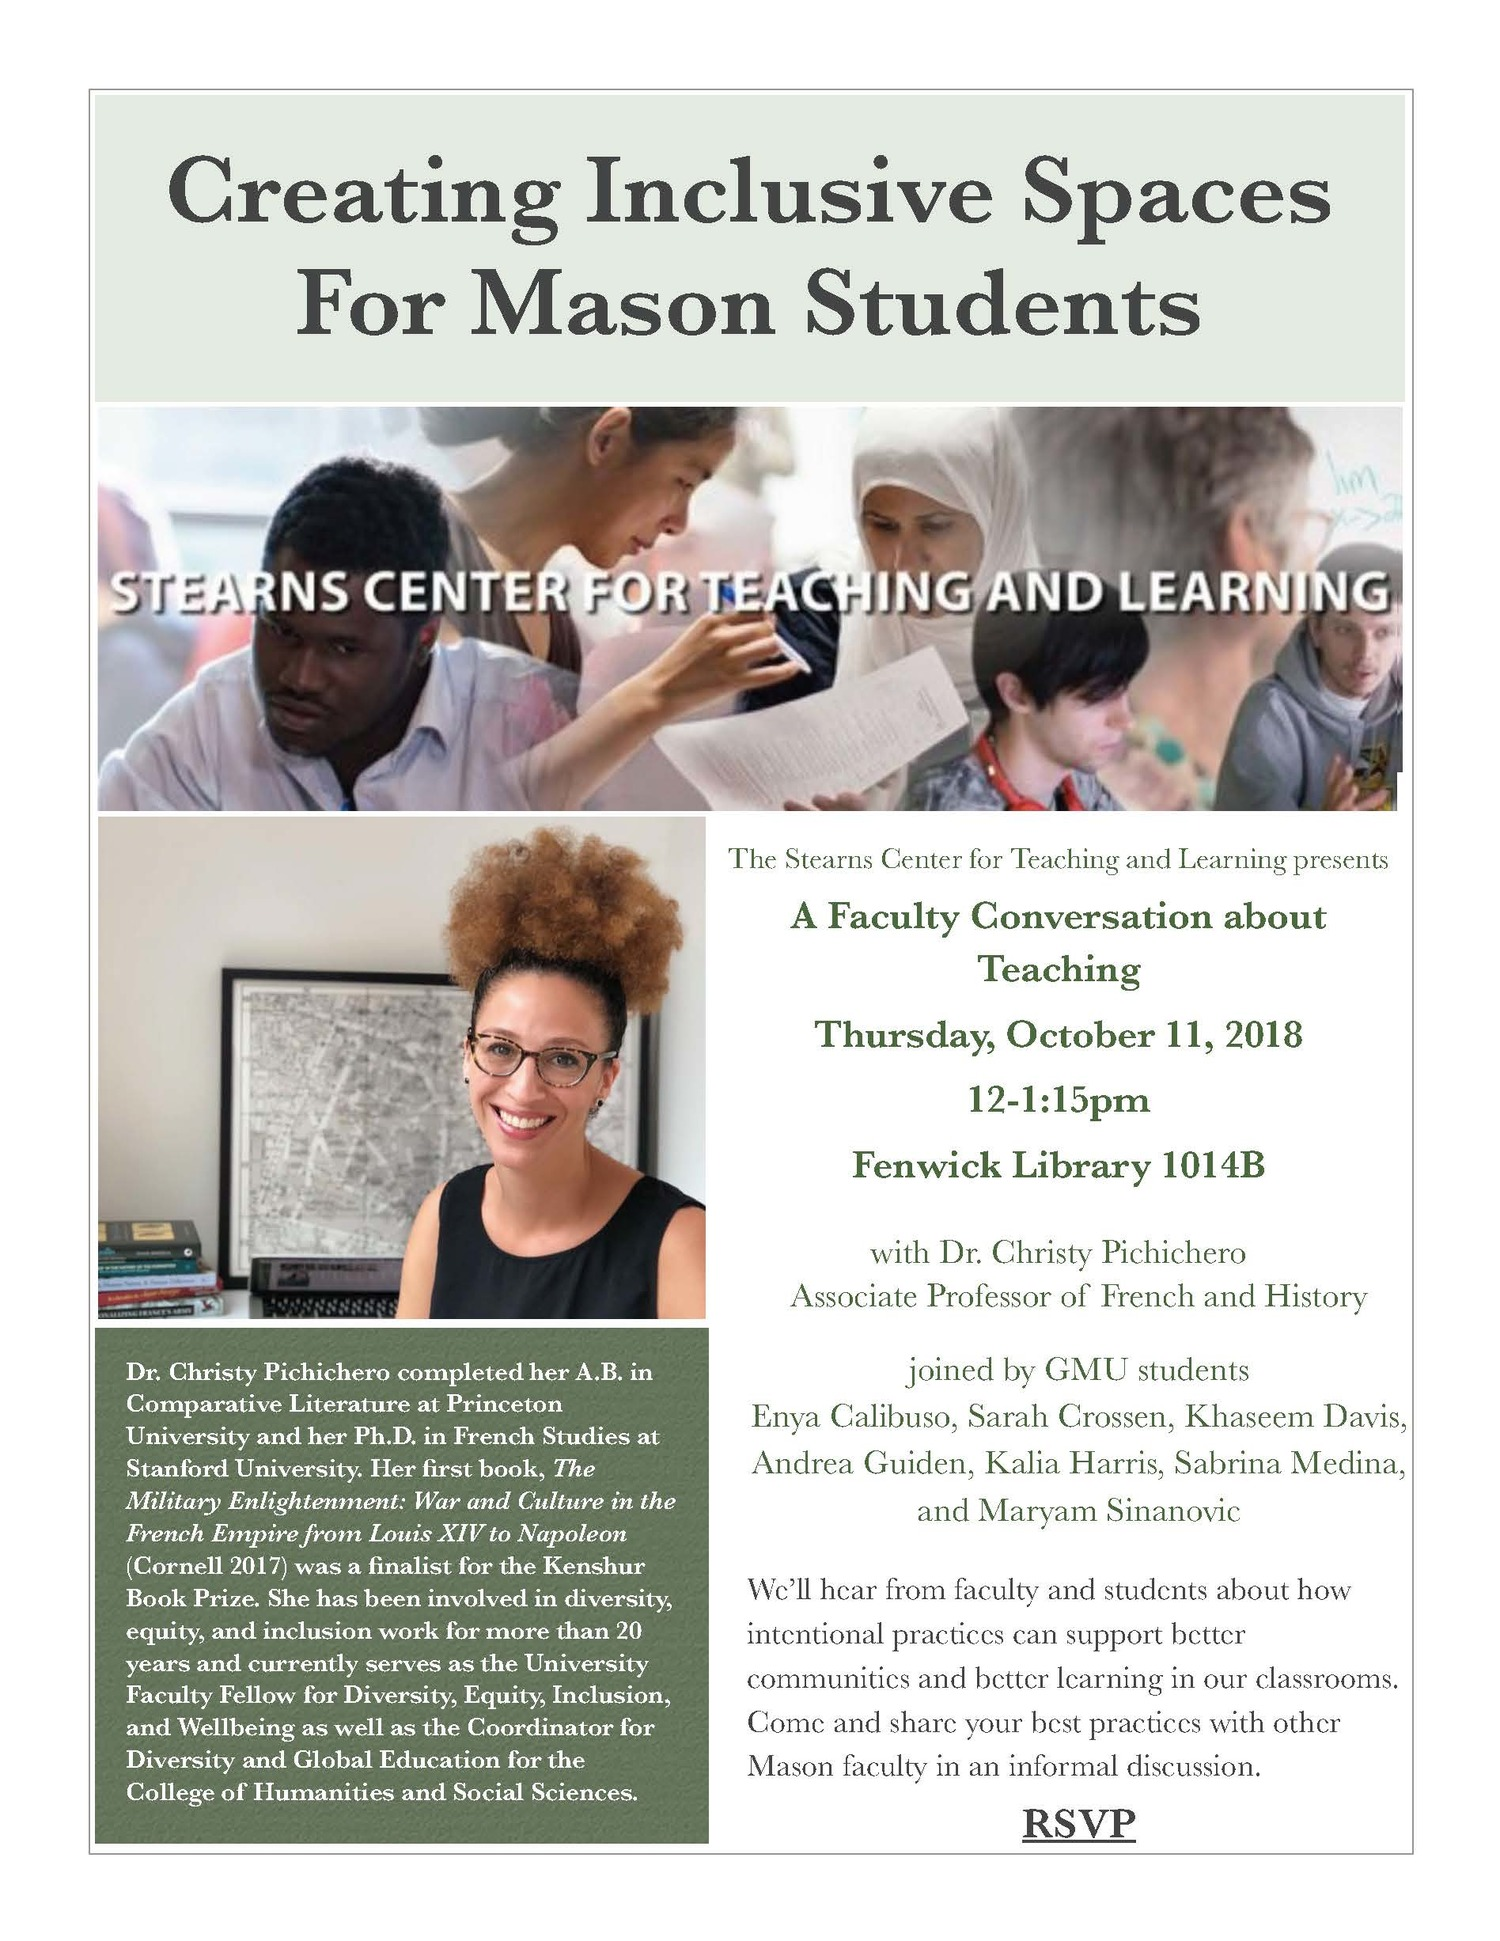 Creating Inclusive Spaces for Mason Students